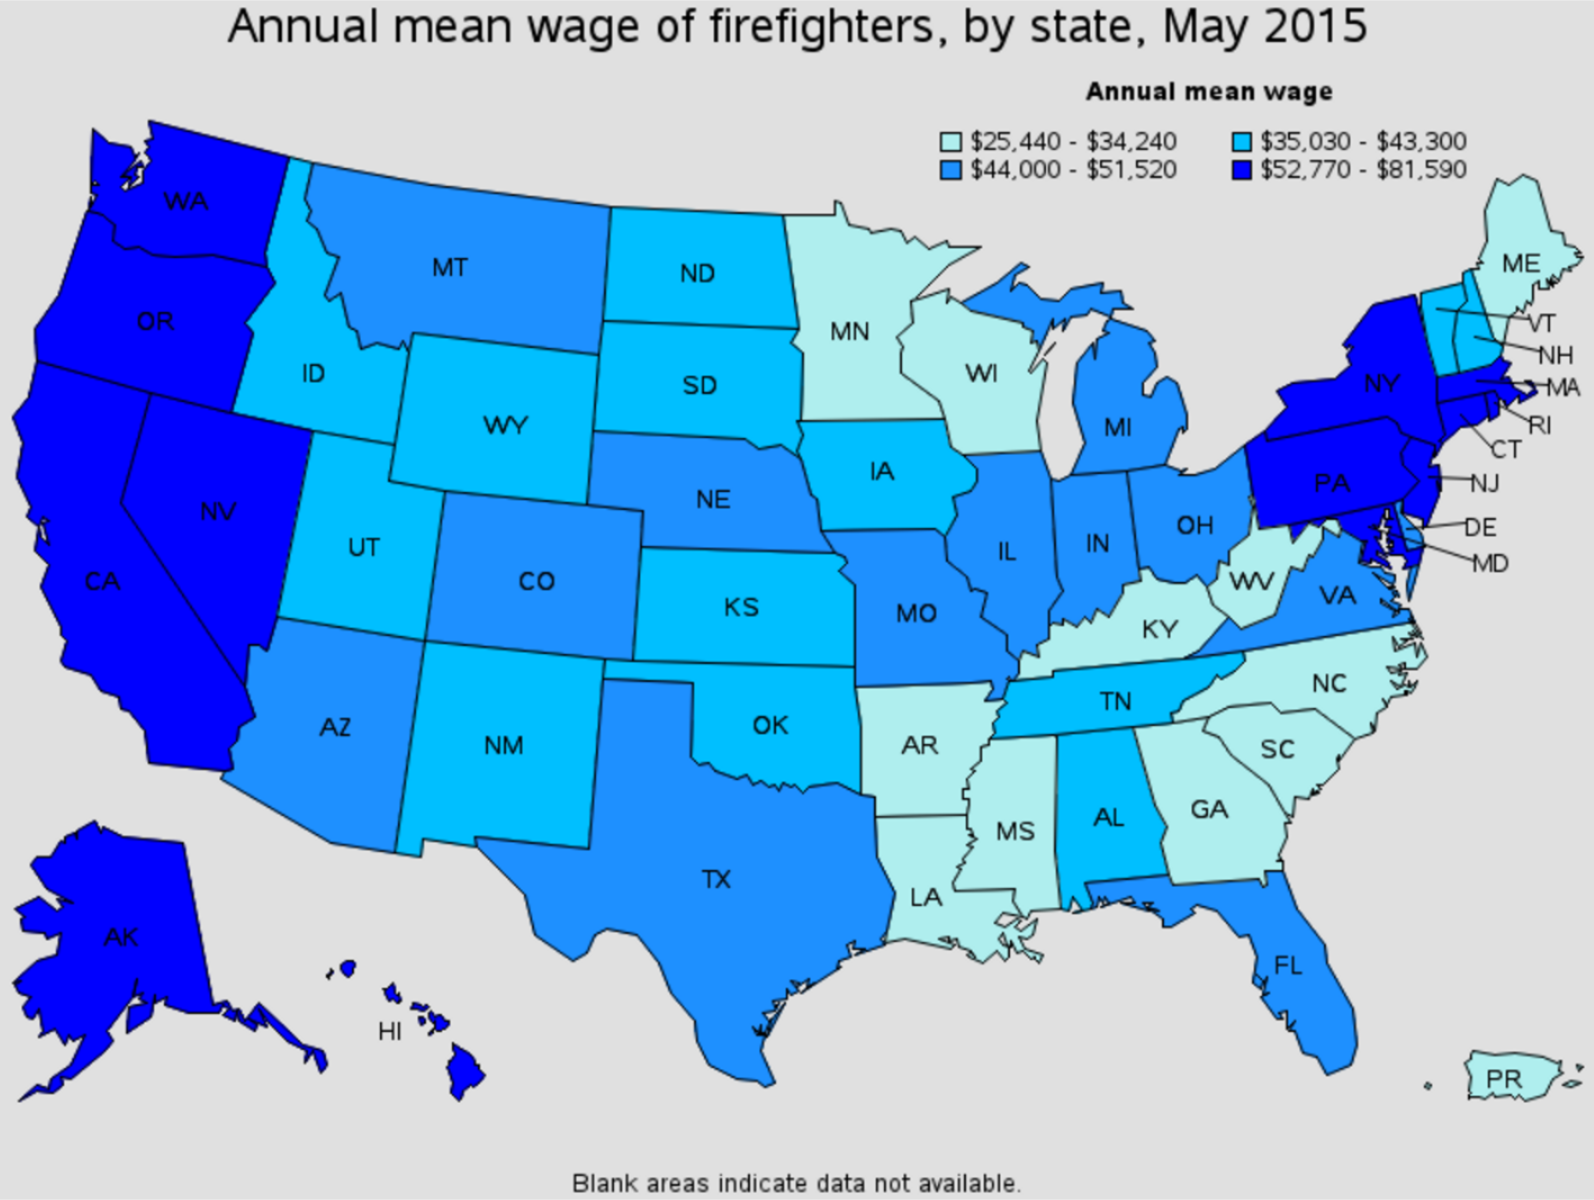 firefighter average salary by state West Greenwich Rhode Island